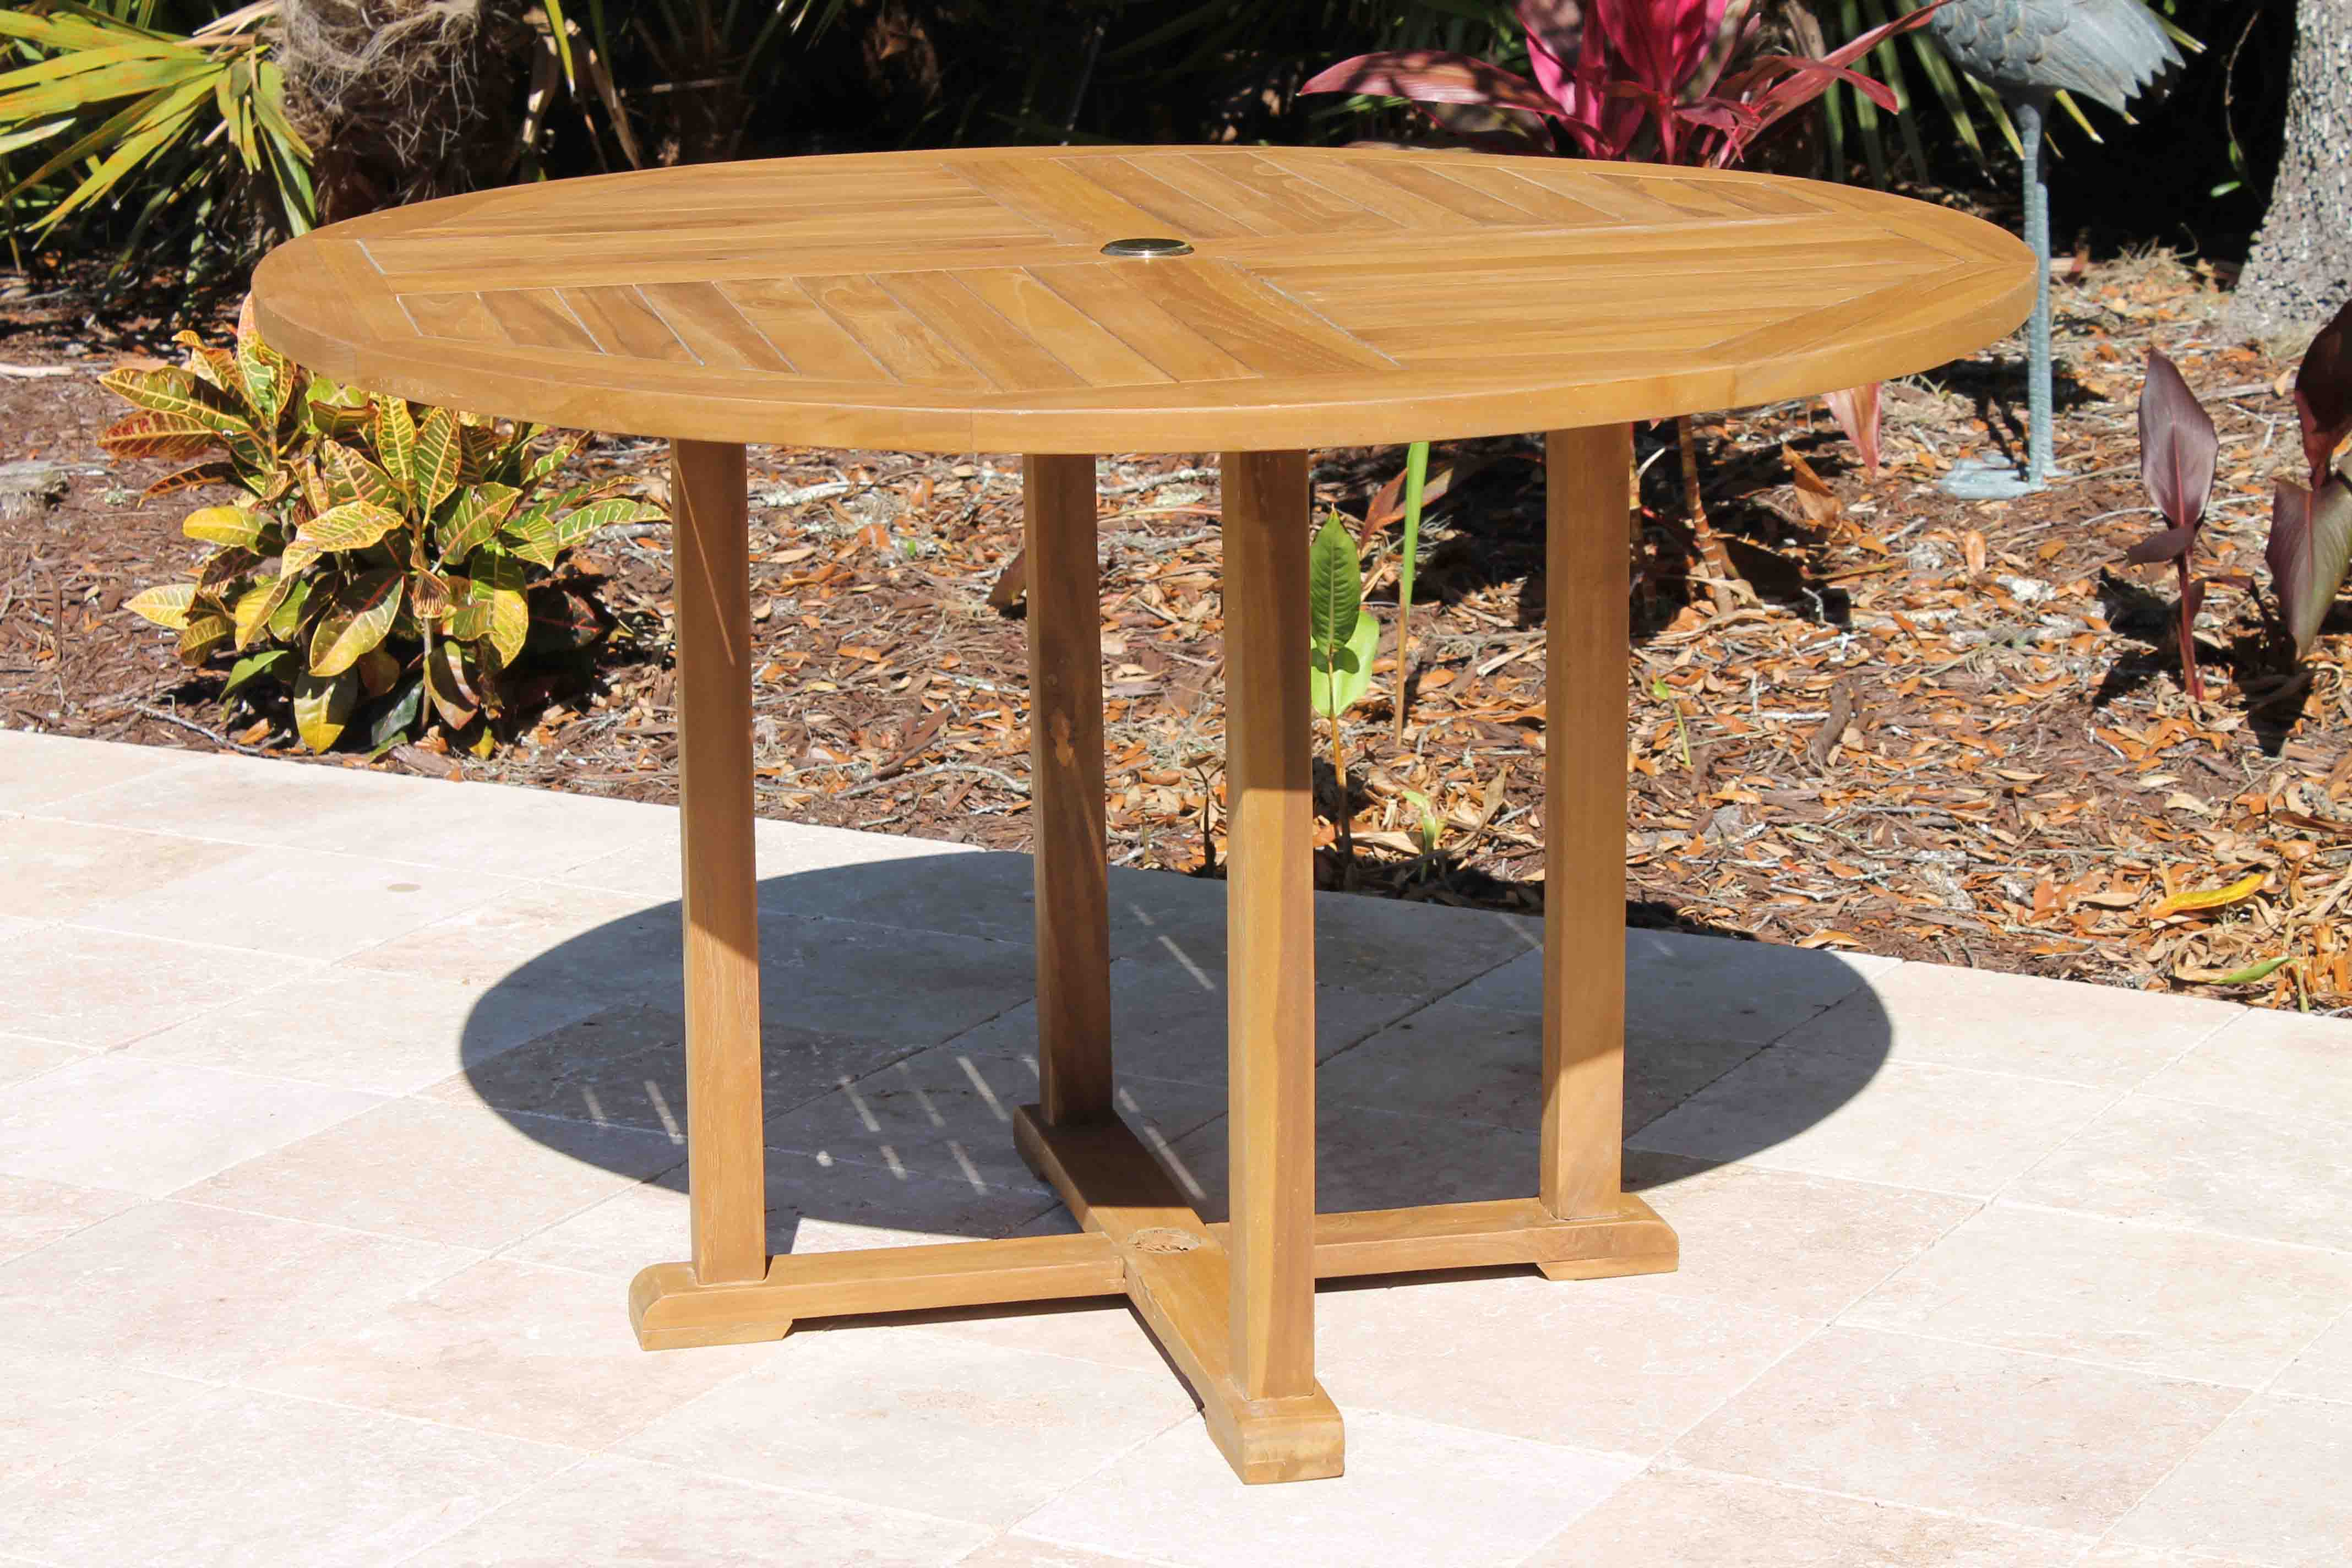 SALE 48in Round Table & 4 Pacific Chair Teak Set  Oceanic